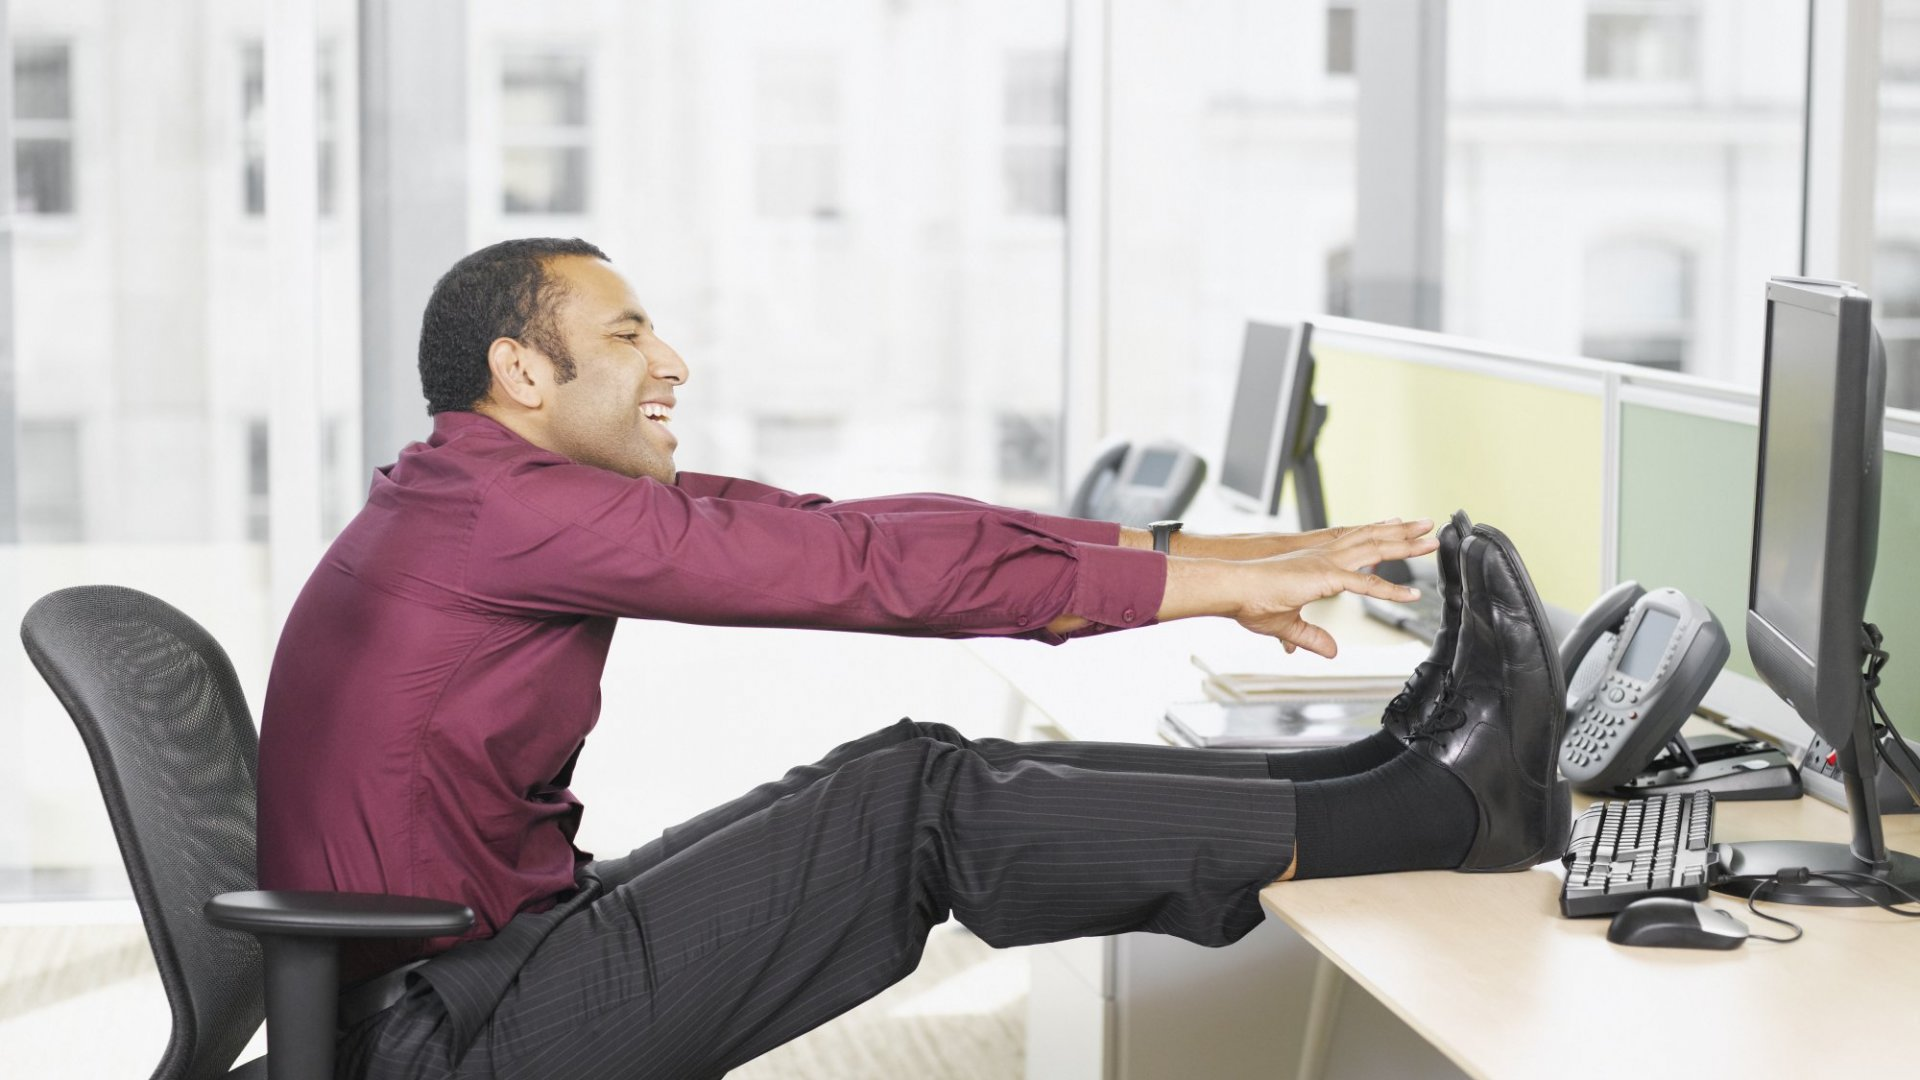 Does your lack of workplace flexibility leave you wanting to stretch more?